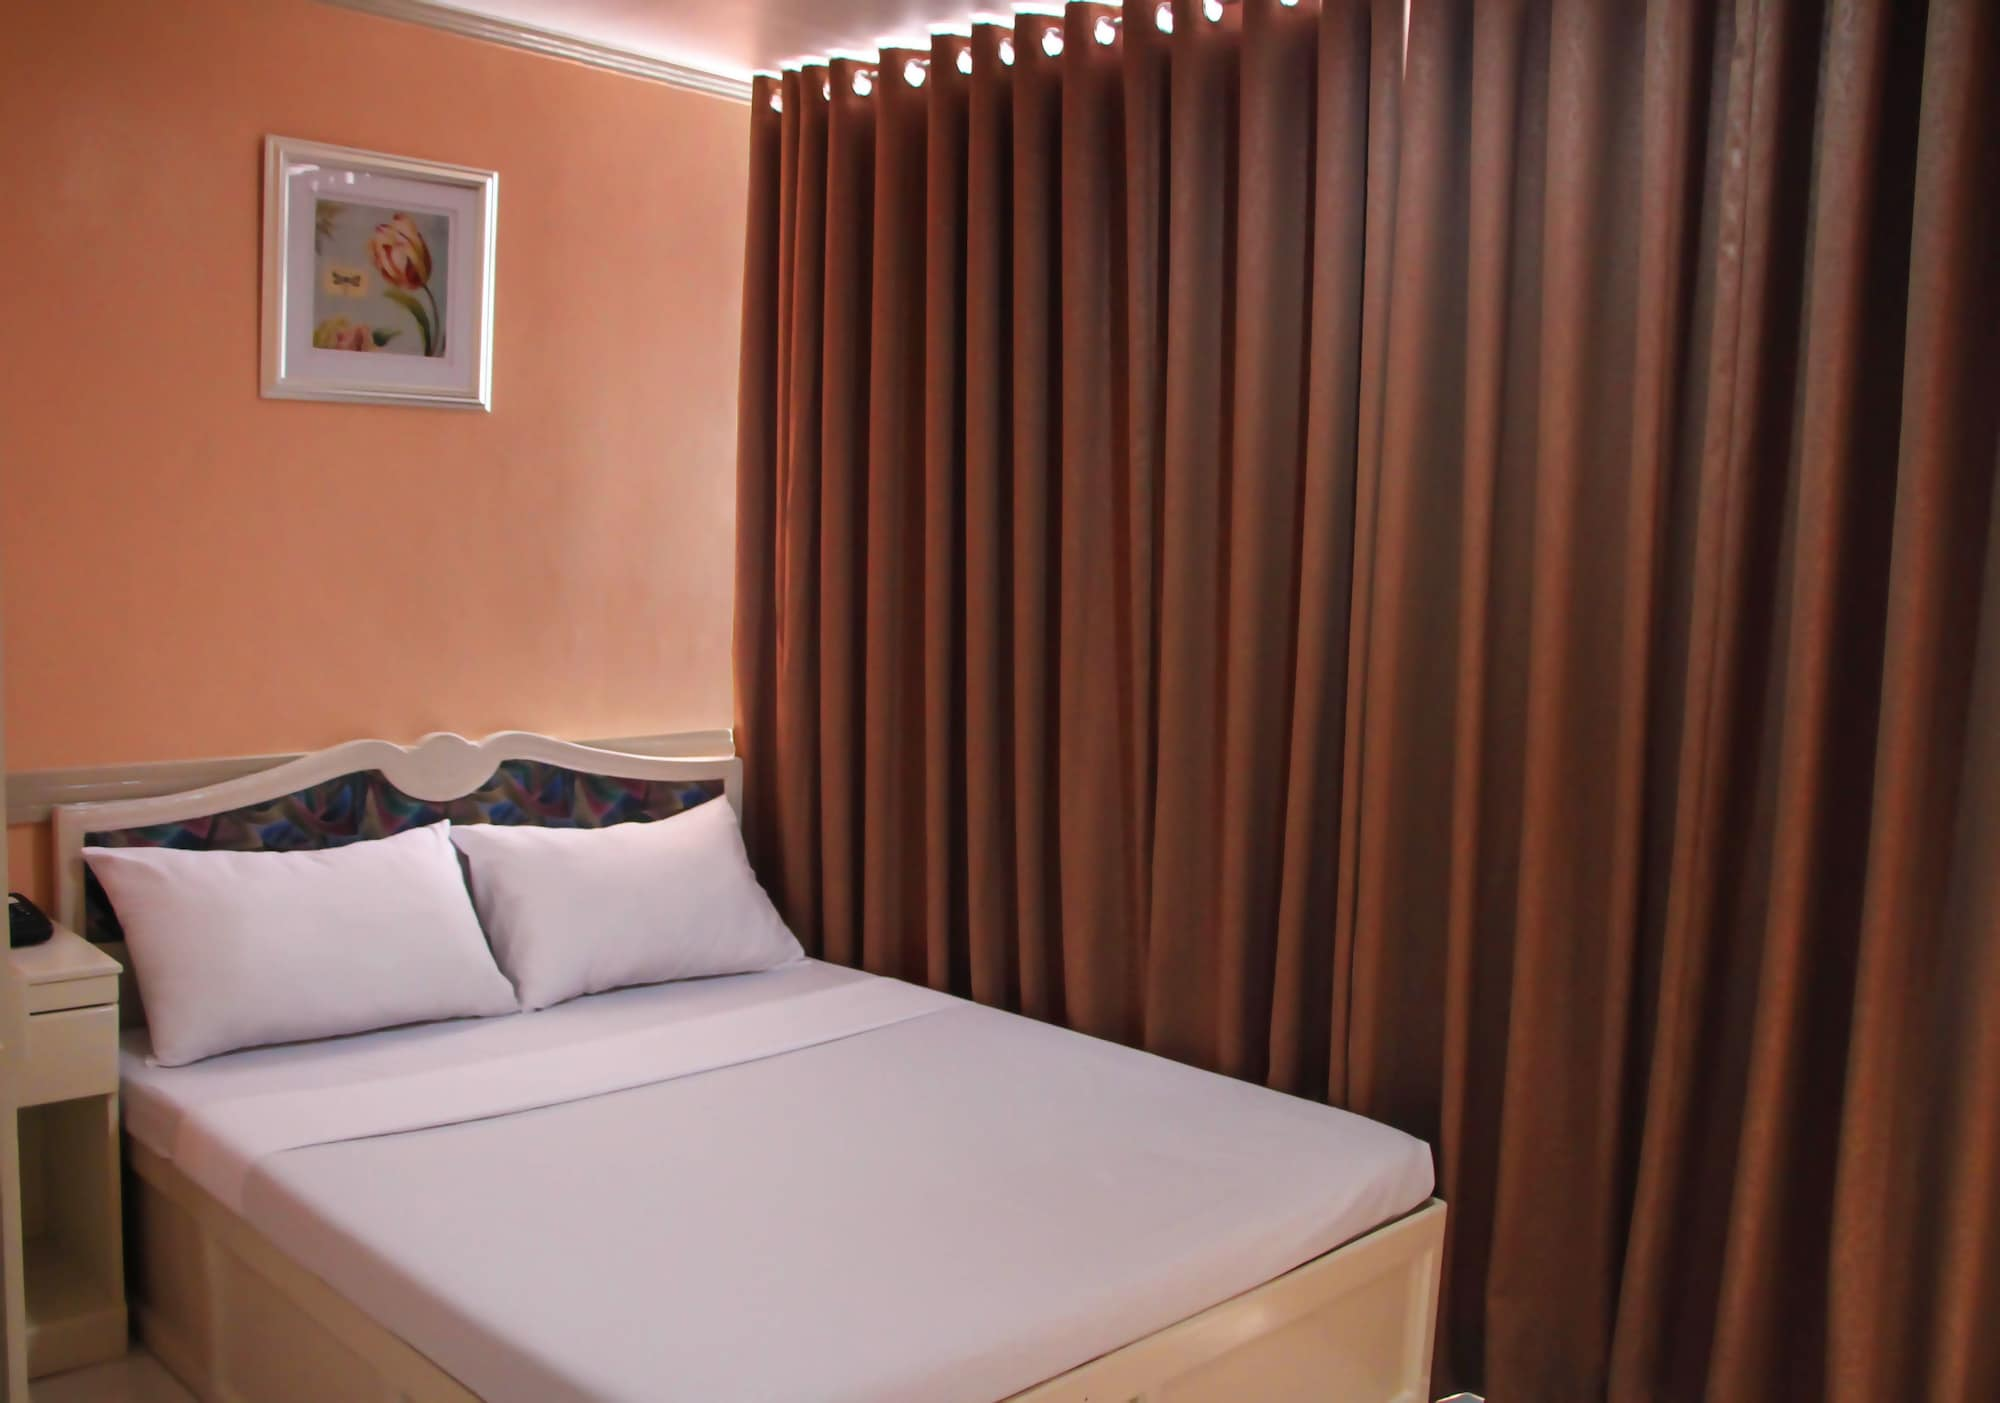 Hotel Dolores, General Santos City